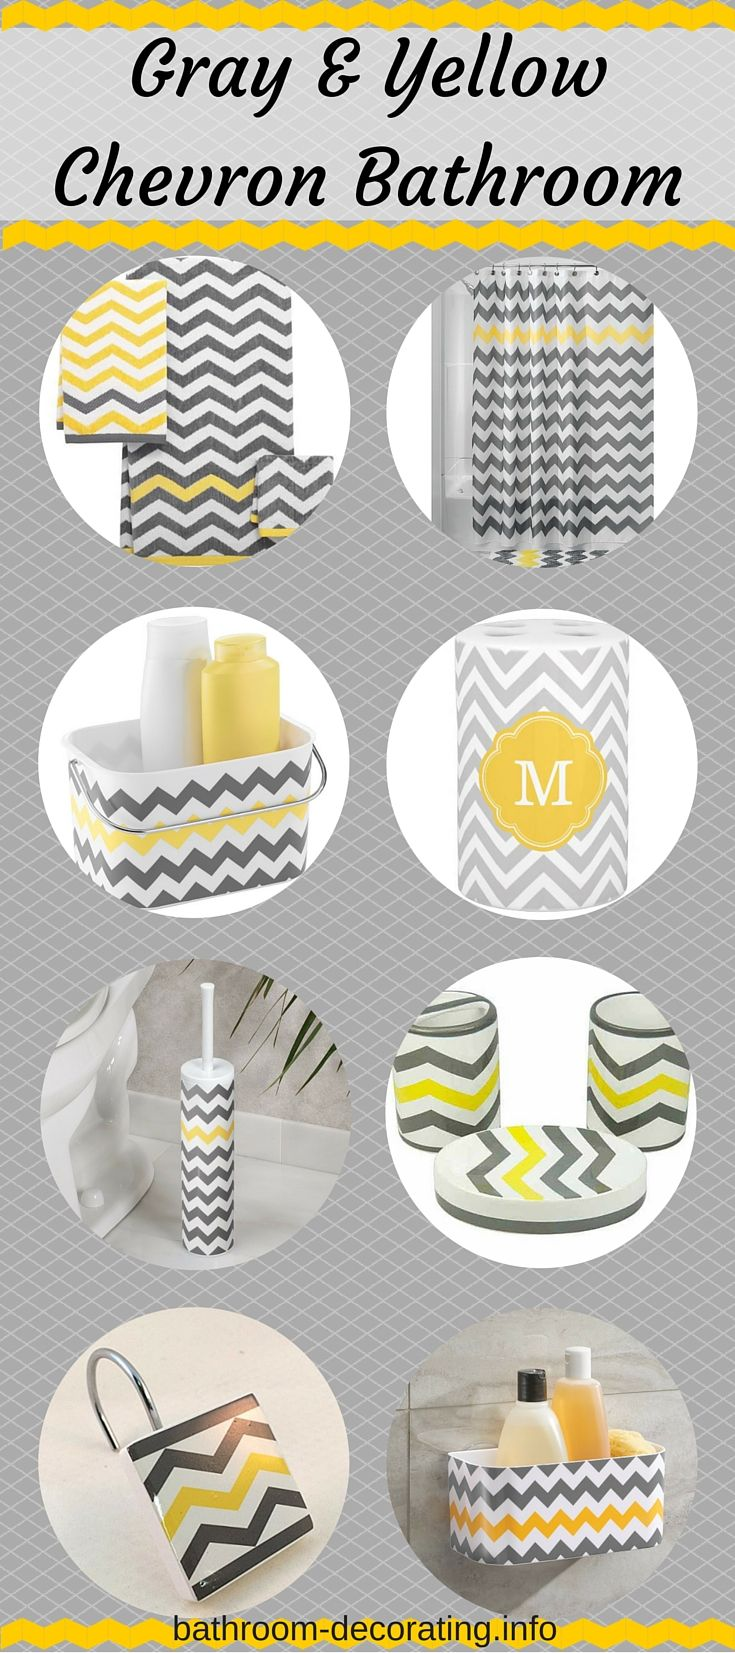 Best Yellow Bathroom Decor Ideas On Pinterest Diy Yellow - Black and white chevron bathroom mat for bathroom decorating ideas